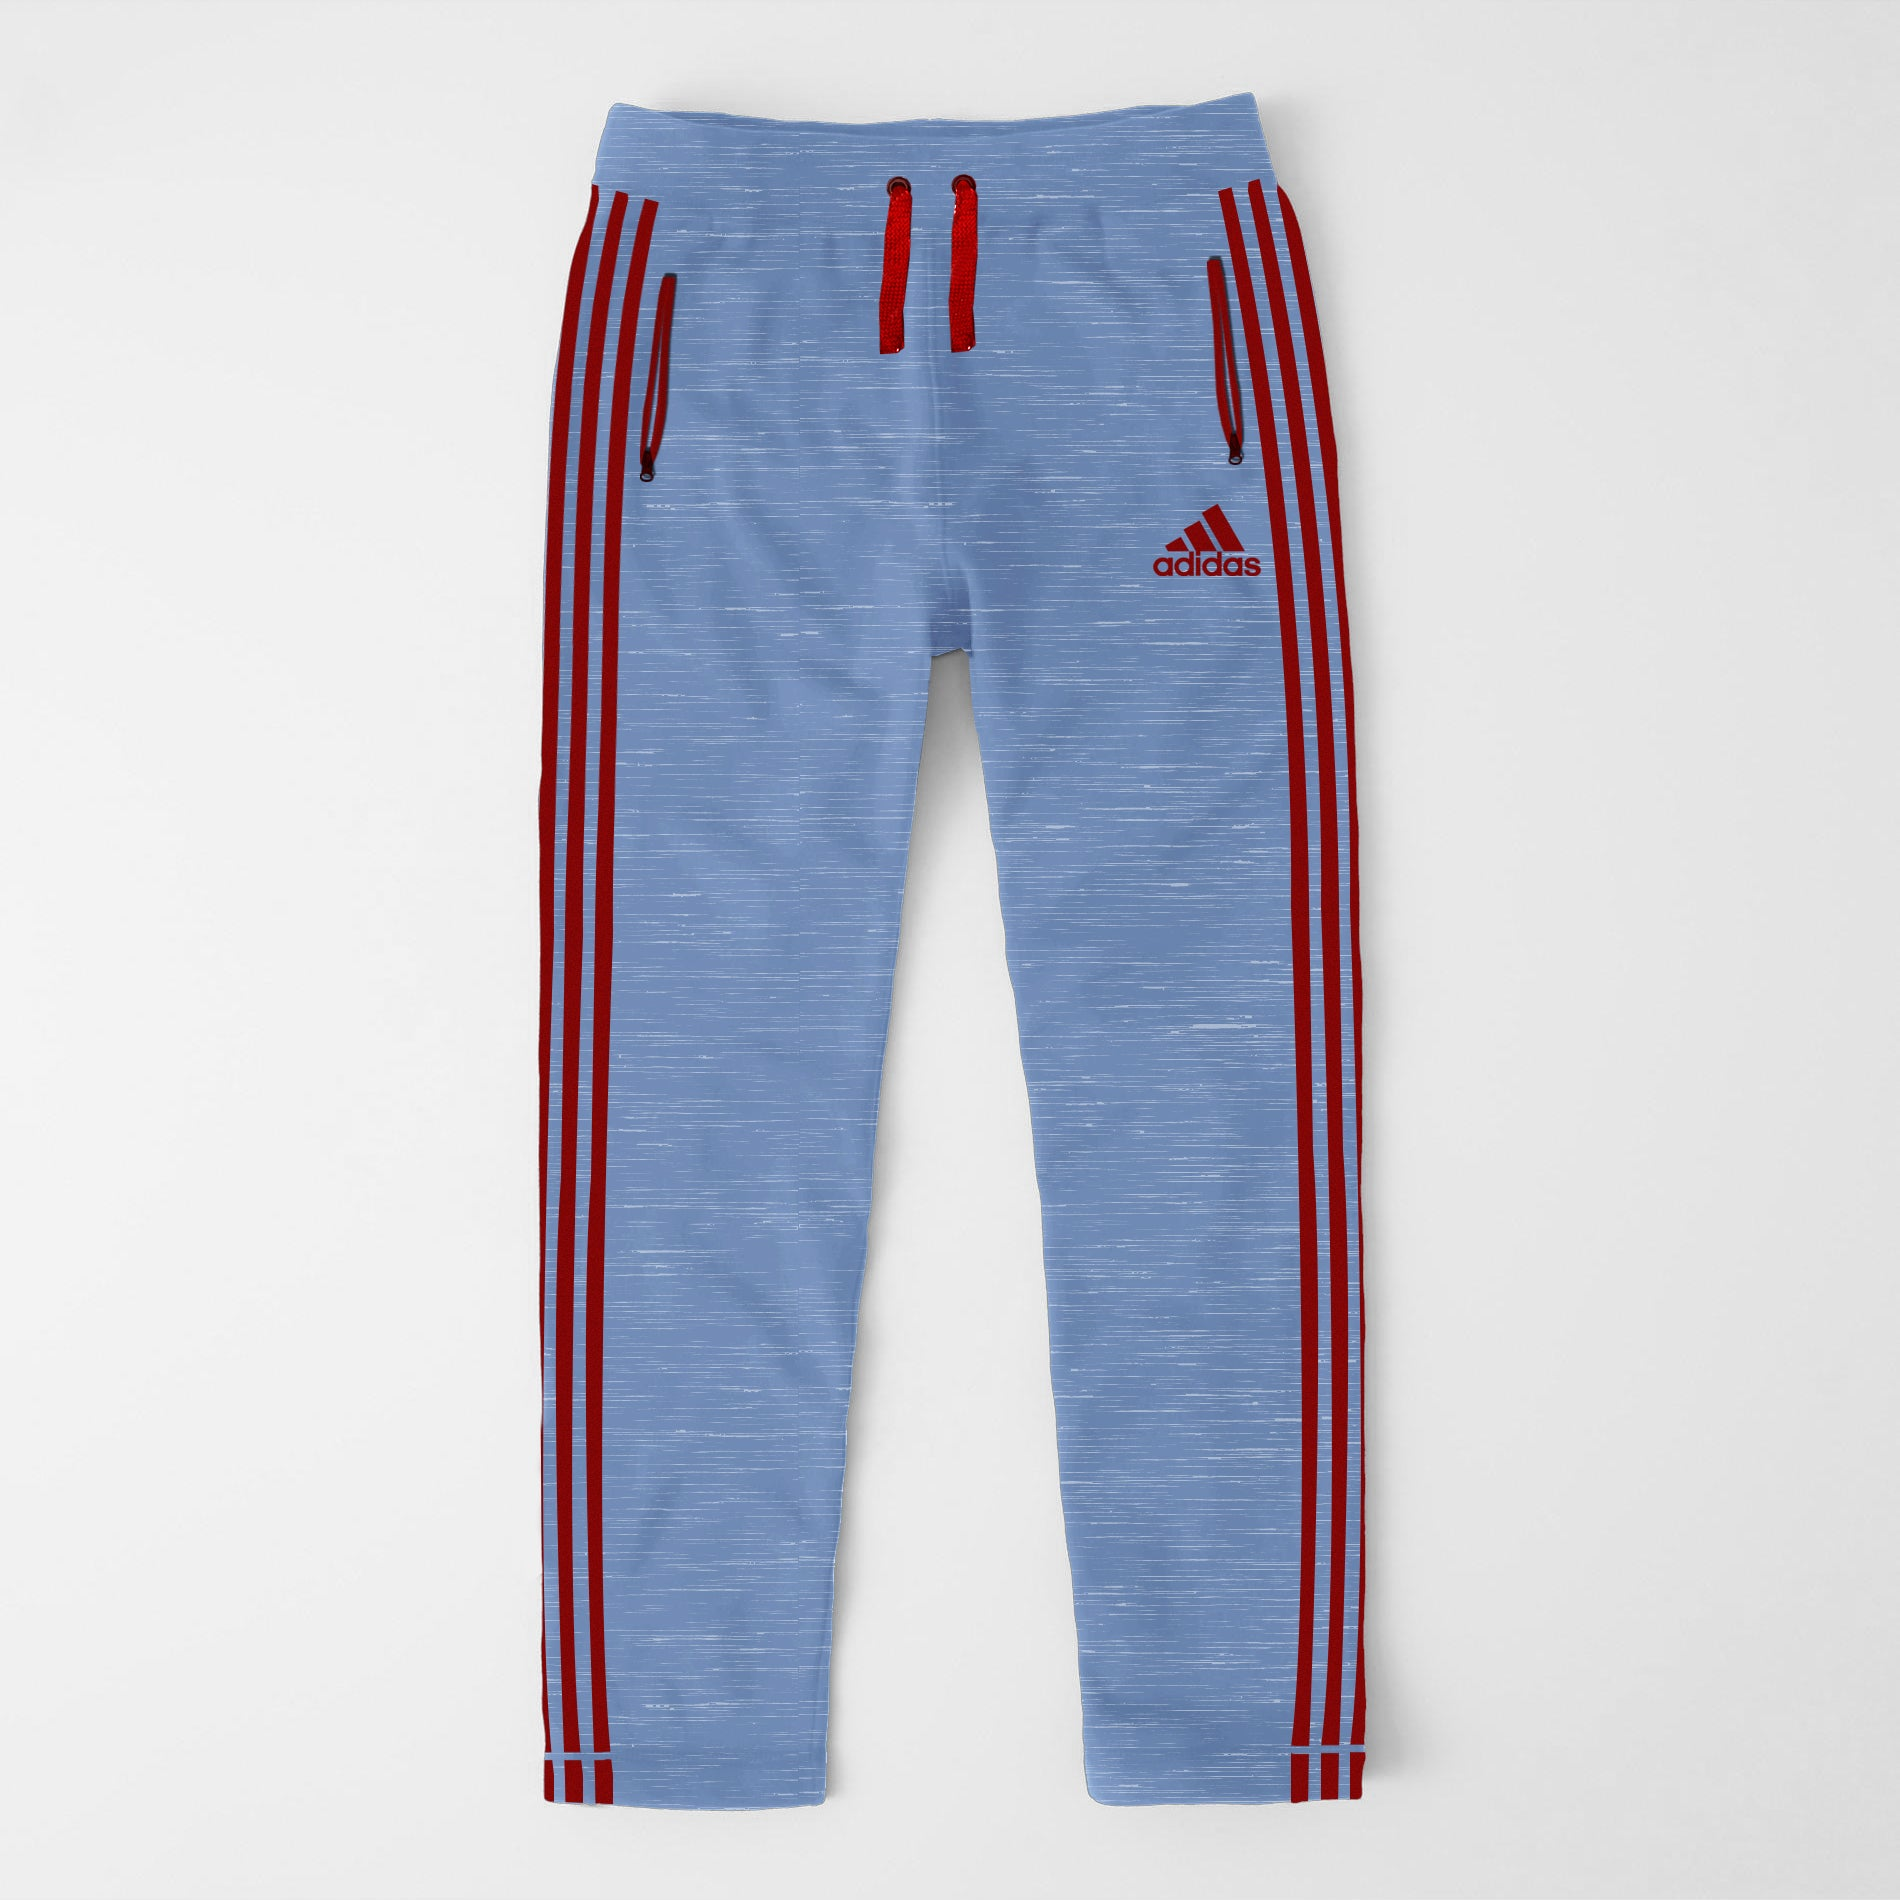 Adidas Single Jersey Regular Fit Trouser For Men-Light Bord Blue & Melange With Red Stripes-SP363